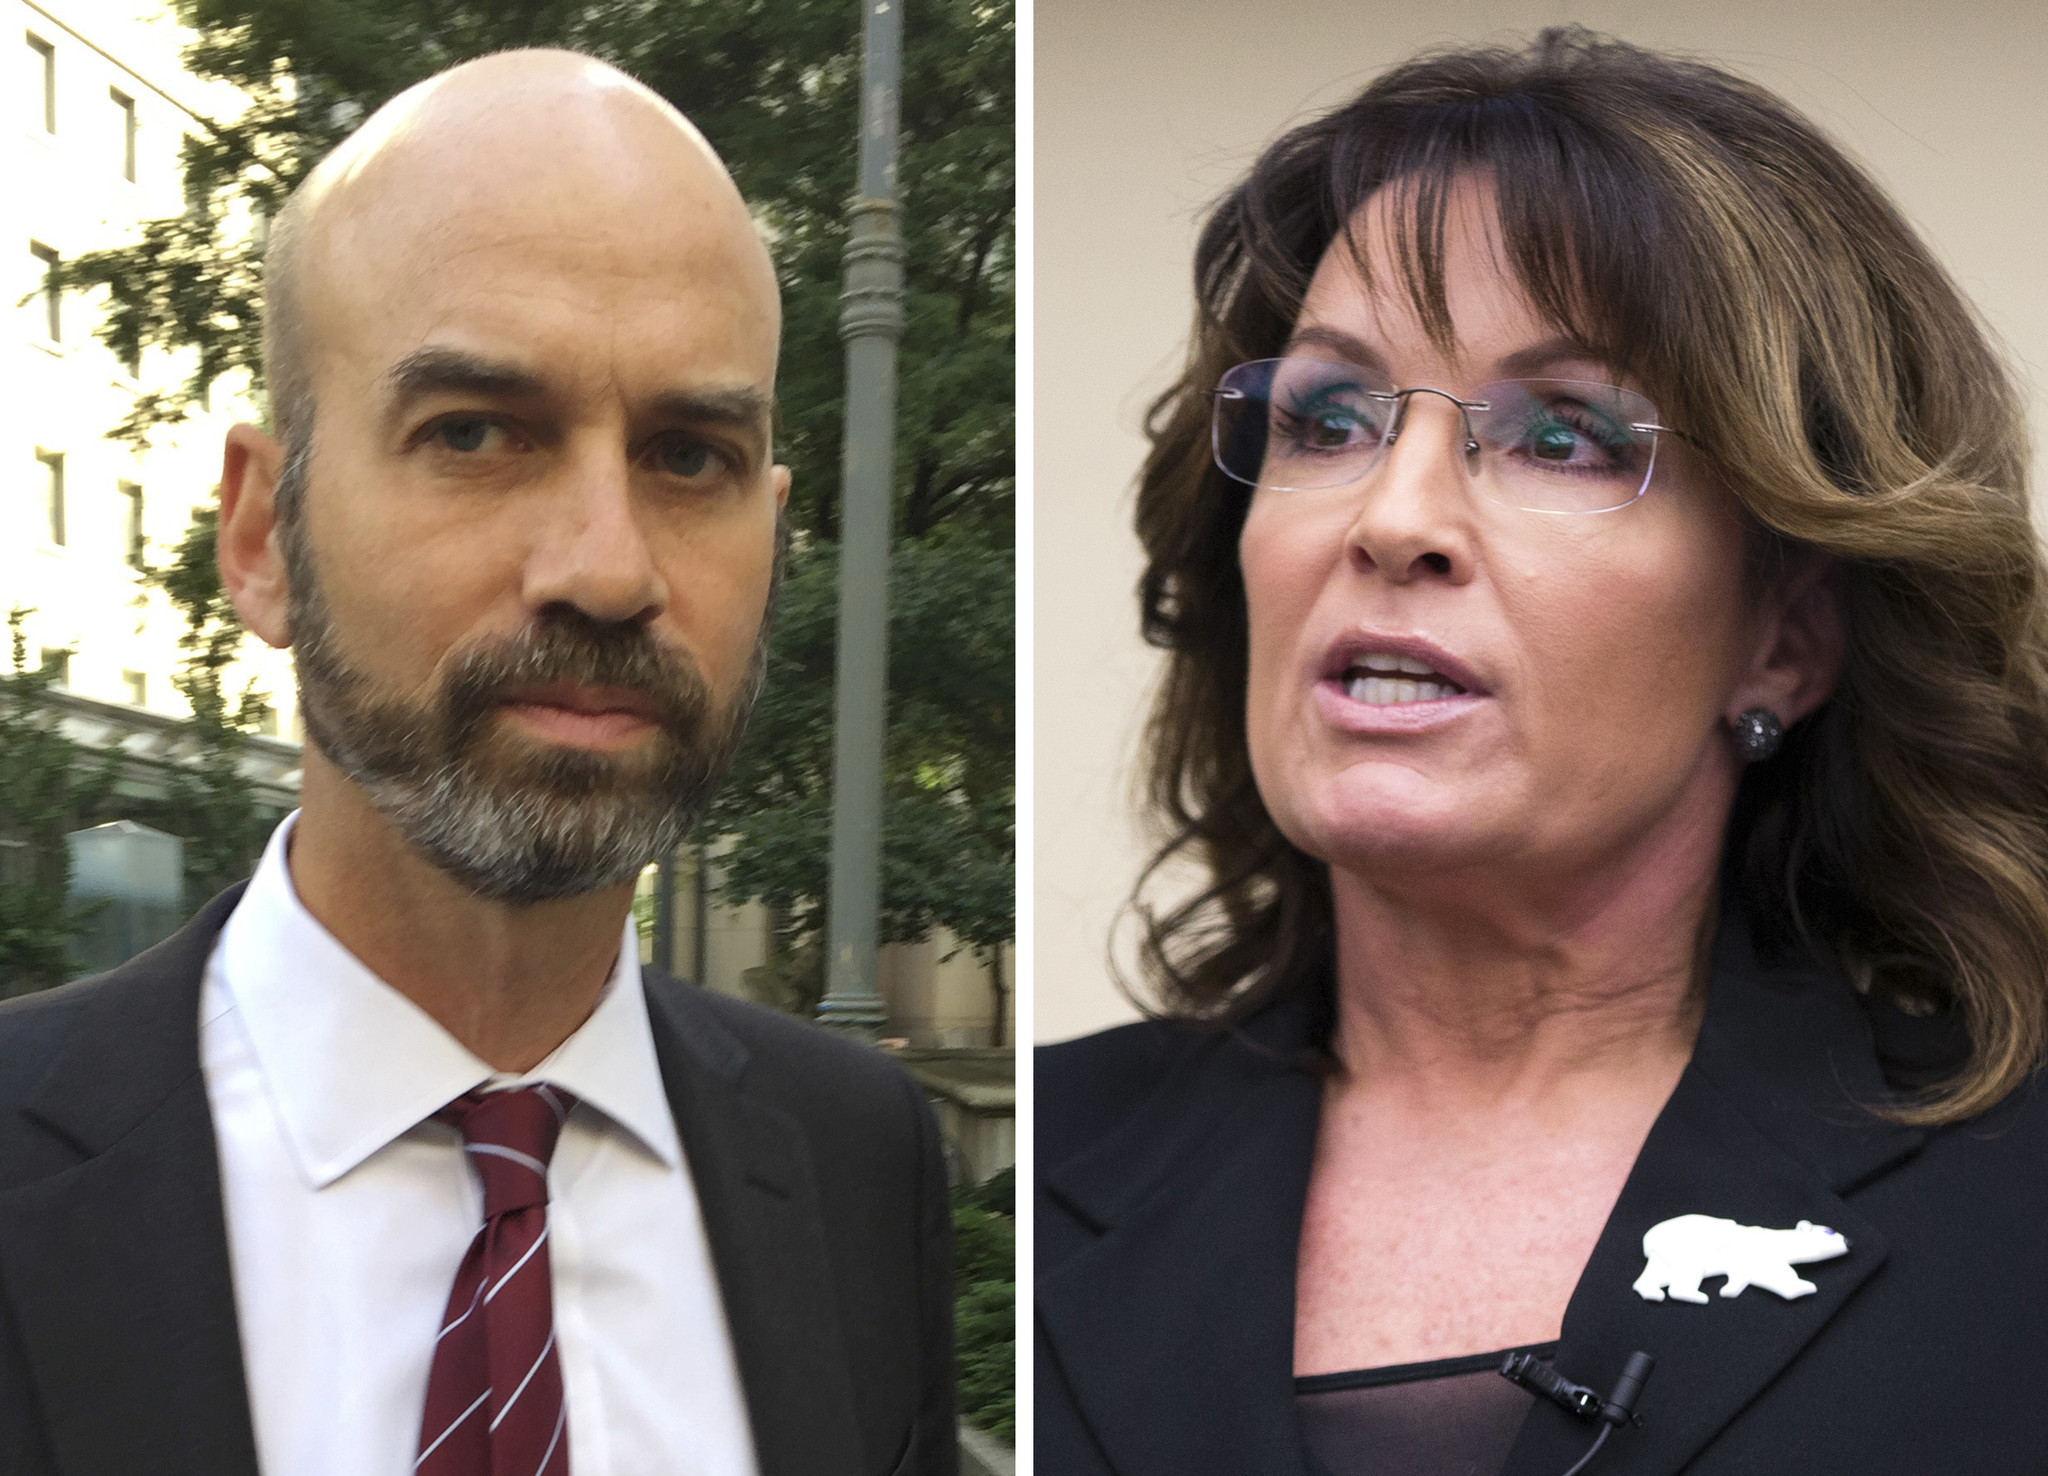 Appeals Court hints Sarah Palin's lawsuit against New York Times will be revived   New York Daily News